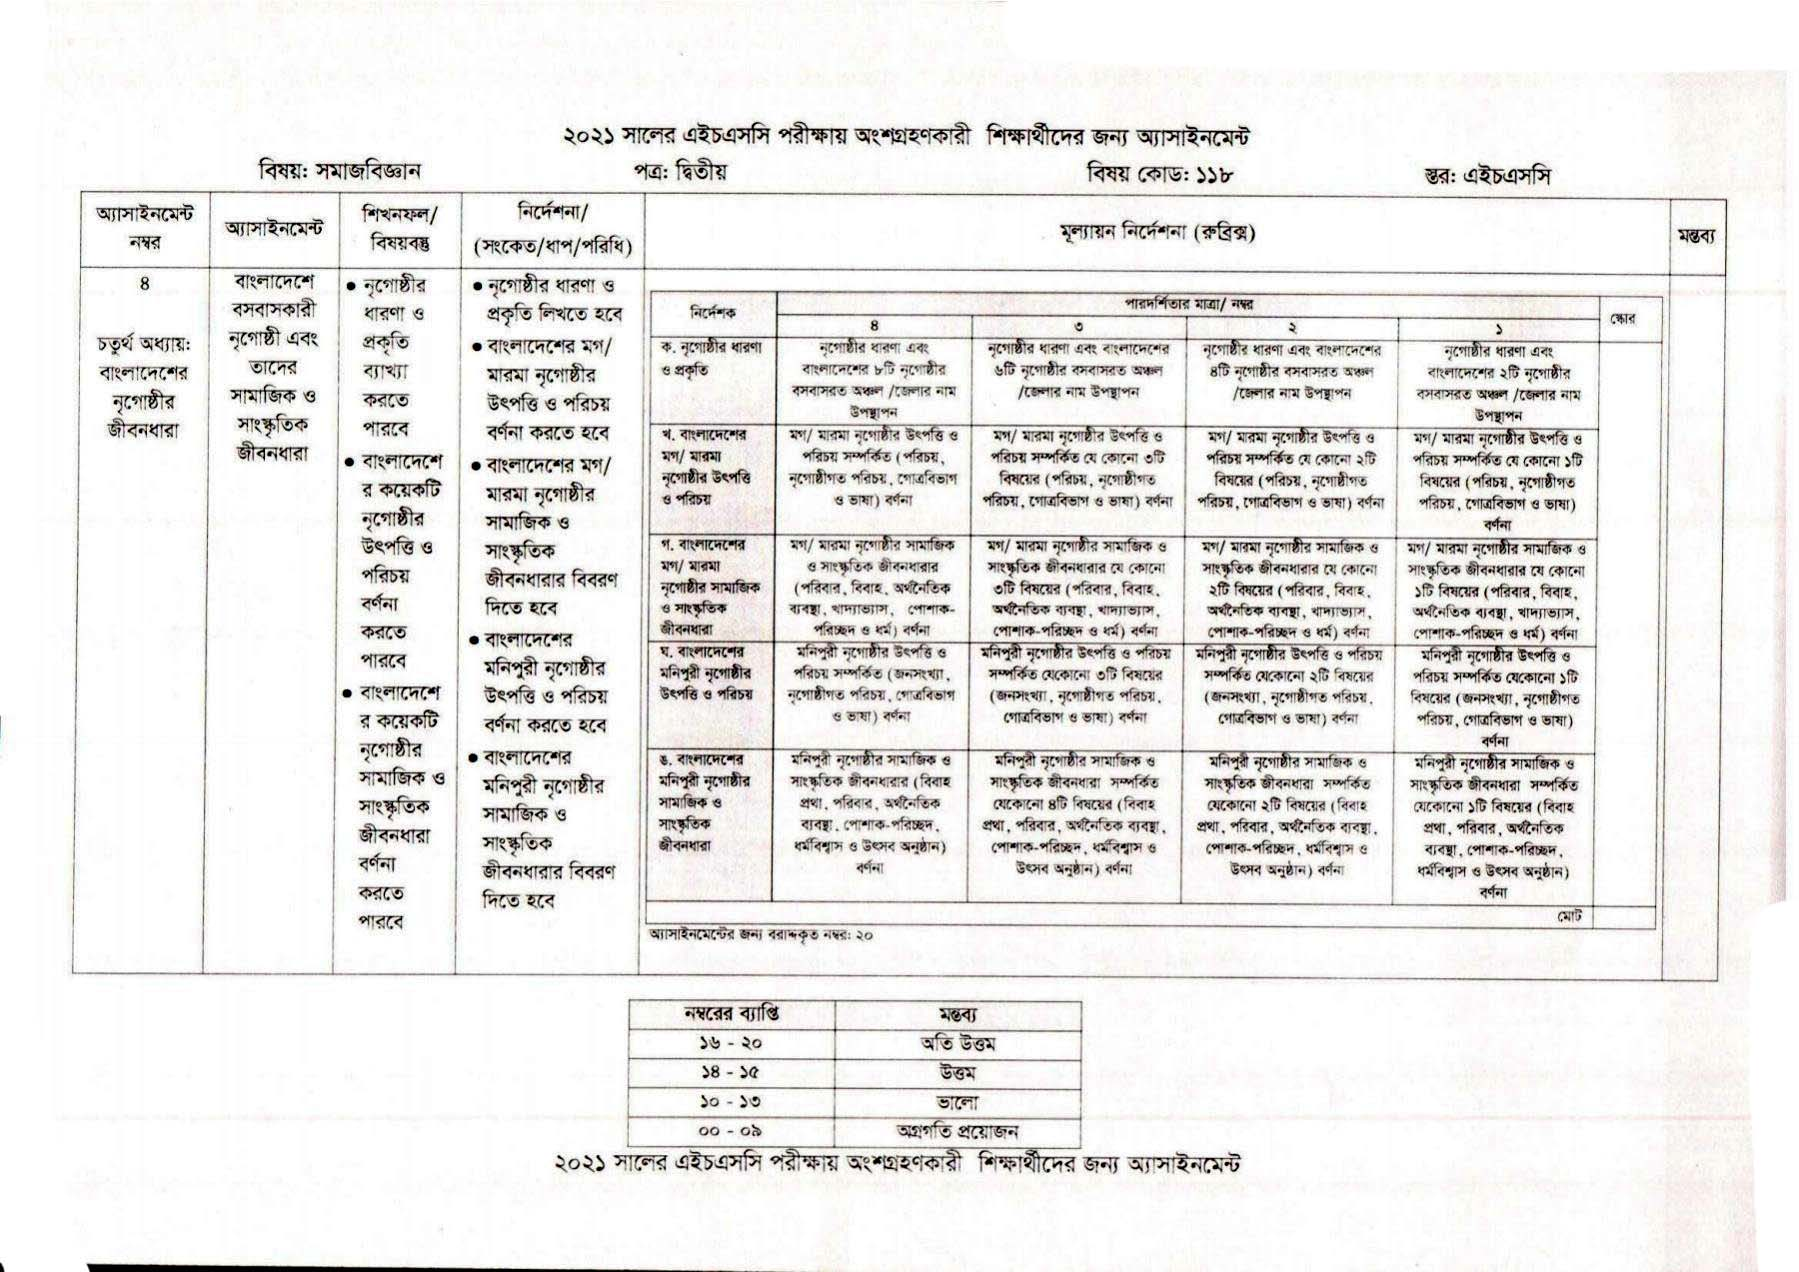 HSC Sociology Assignment Answer for 6th, 3rd week of HSC-2021 candidate 1